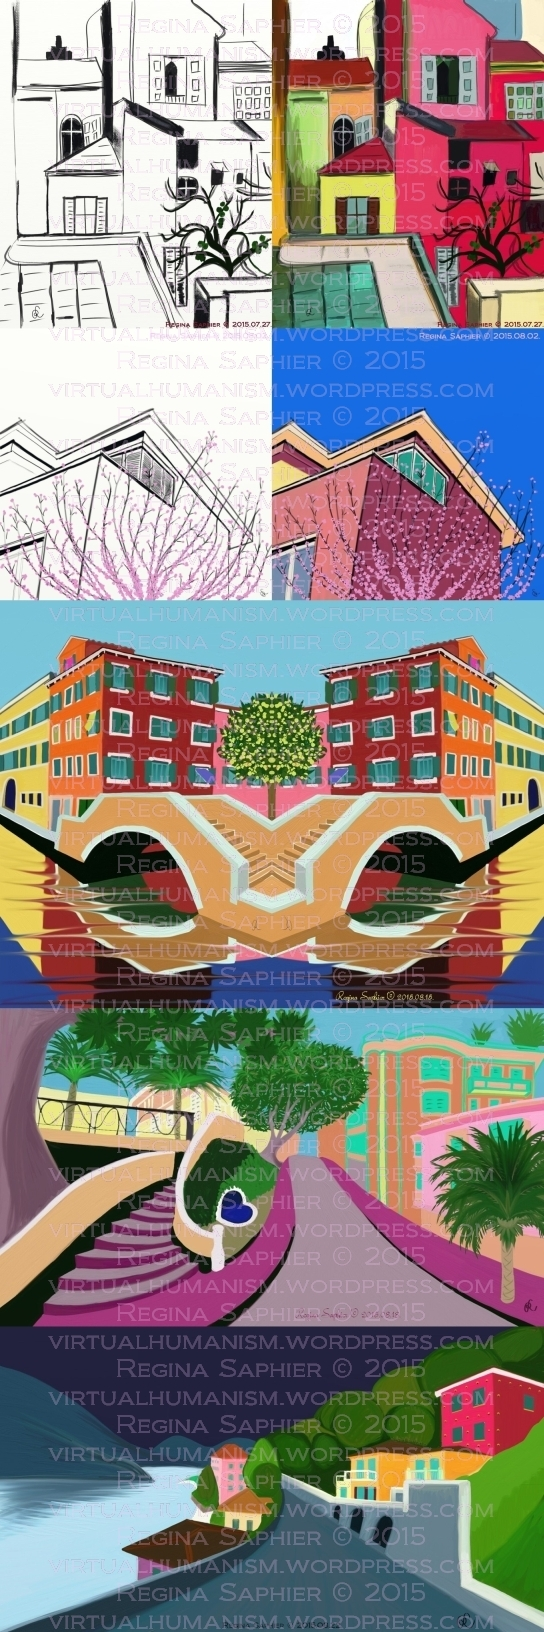 a., Remake of Róbert Berény's Monaco Painting by Regina Saphier 2015 (Freehand Digital Drawing & Freehand Digital Painting) b., 3 Sunflower Street with Cherry Blossoms by Regina Saphier 2015 (Freehand Digital Drawing & Freehand Digital Painting) c., Venice with Lemon Tree by Regina Saphier 2015 (Freehand Digital Painting) d., Monaco Rue des Iris by Regina Saphier 2015 (Freehand Digital Painting) e., Lake Como by Regina Saphier 2015 (Freehand Digital Painting)